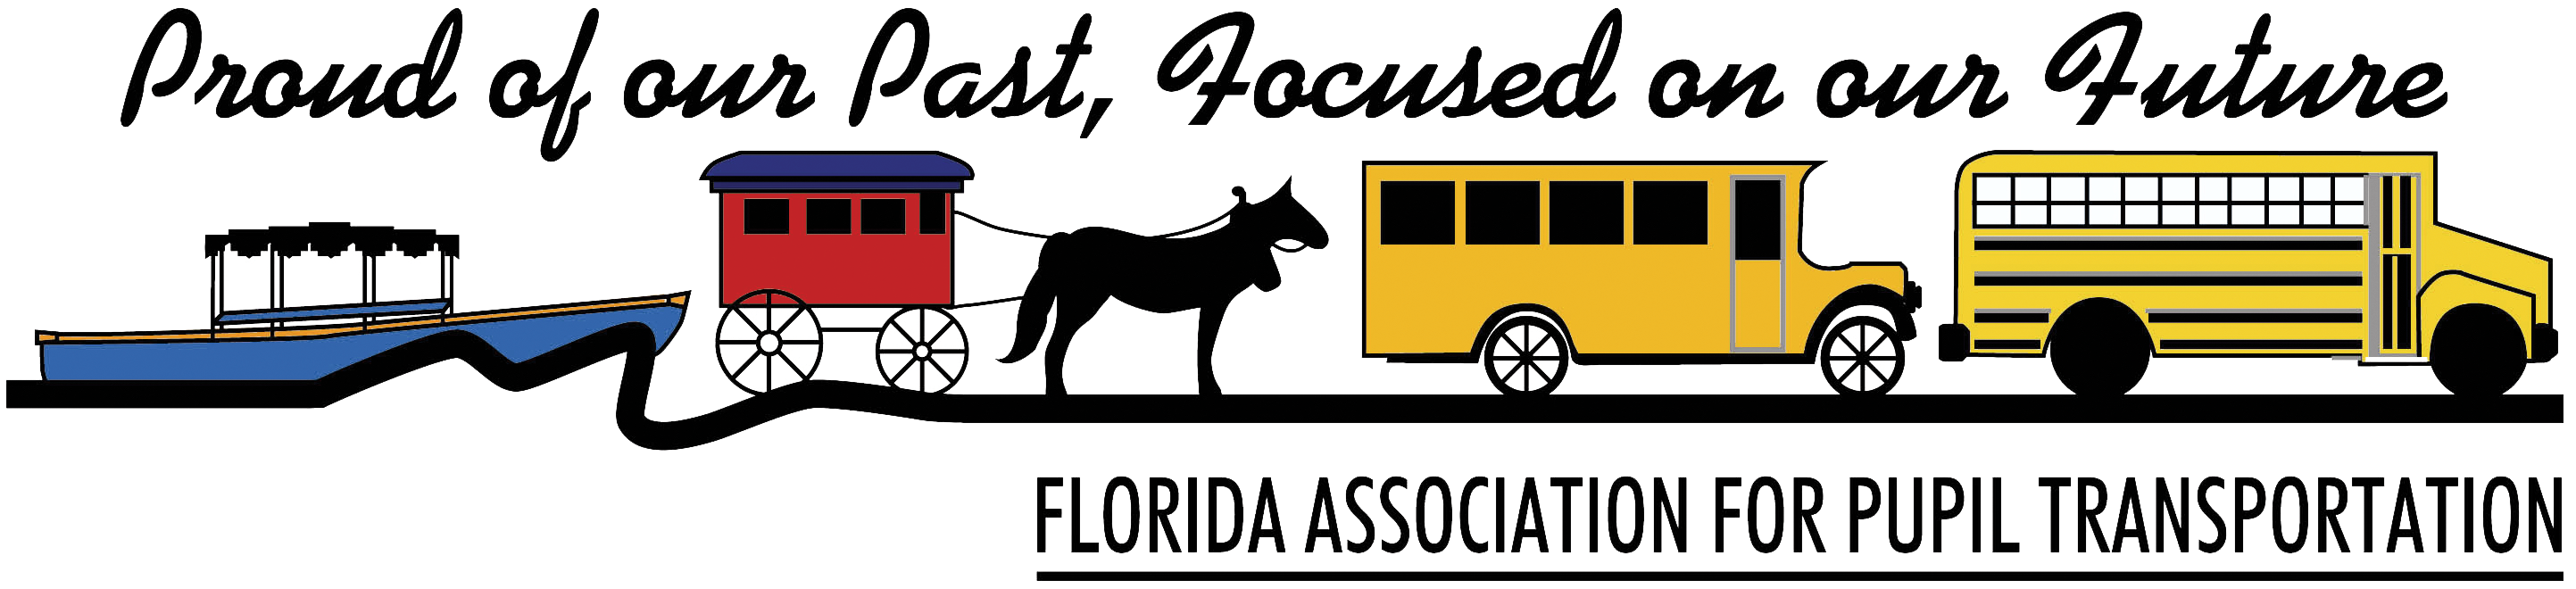 Florida Association for Pupil Transportation